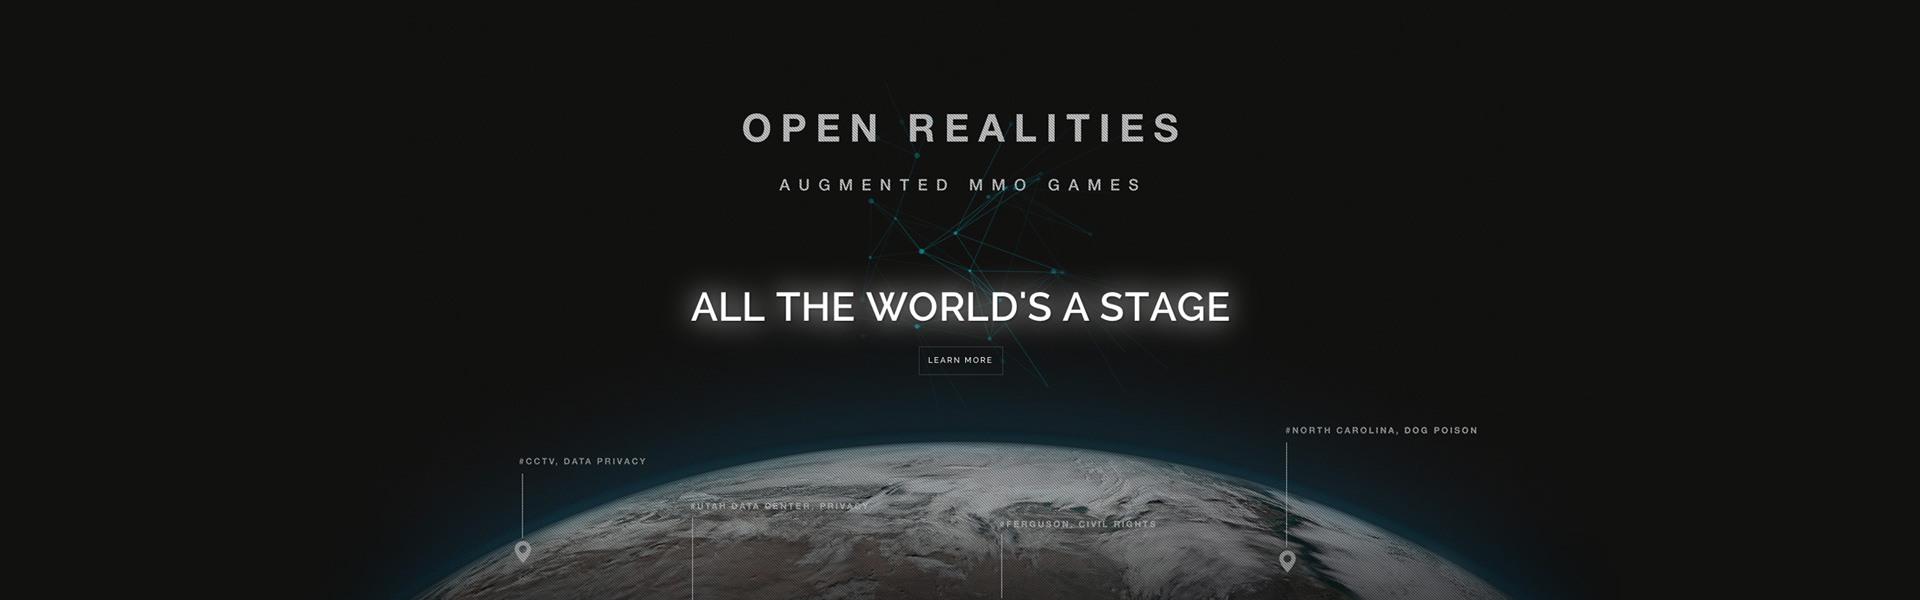 Open Realities, Inc. LOCATION BASED AUGMENTED MMO Games